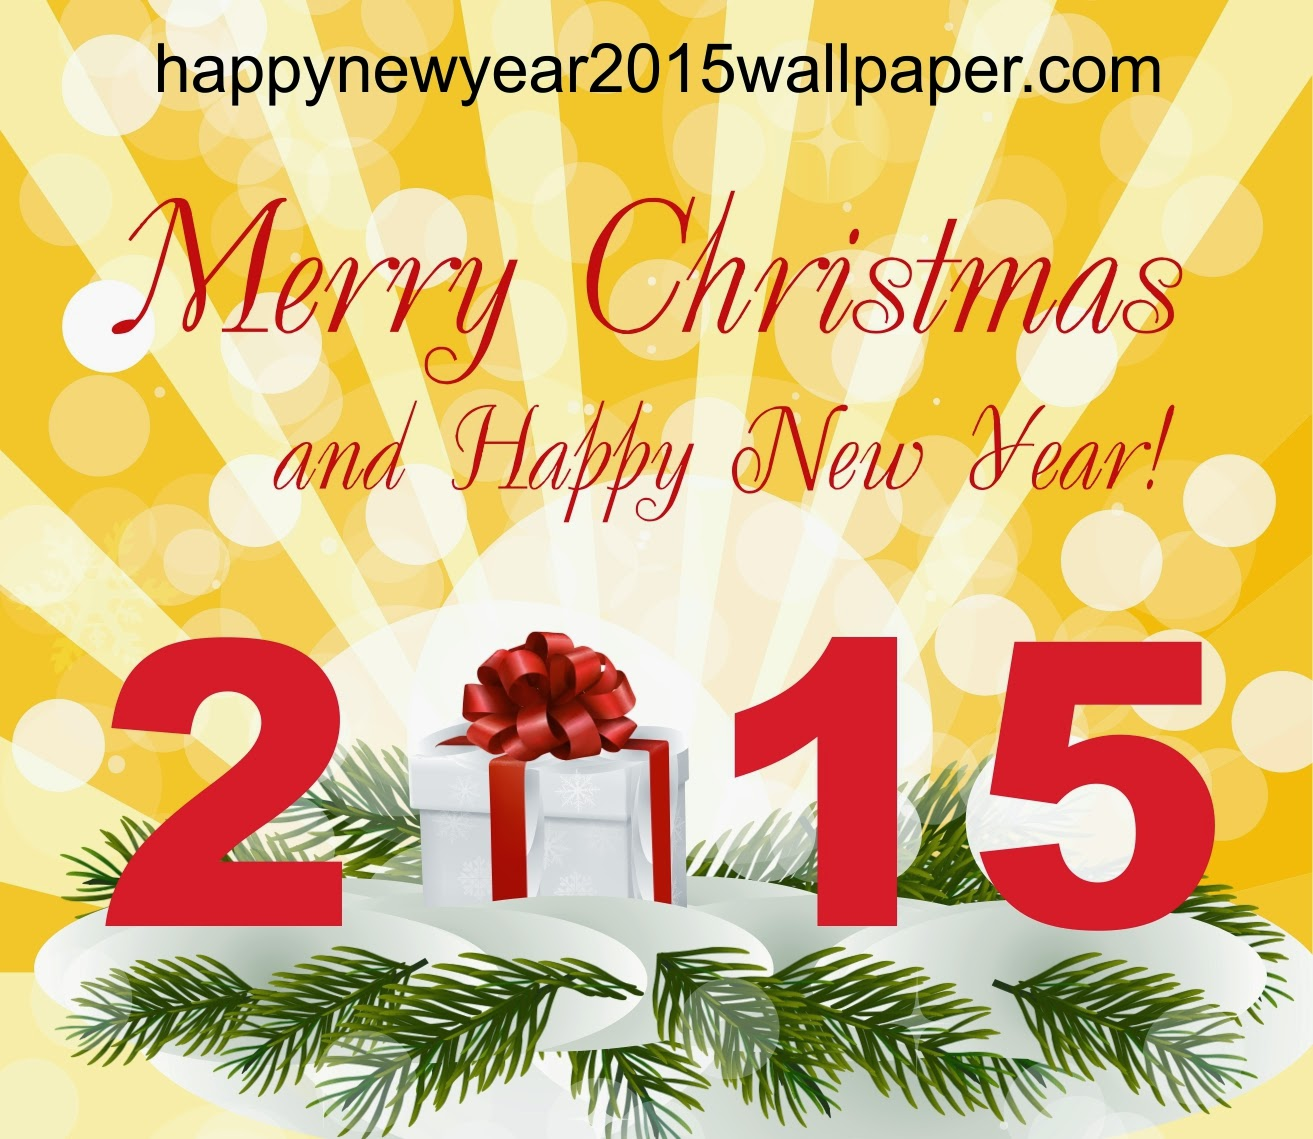 Happy new year 2015 wallpaper wishes sms google kristyandbryce Images